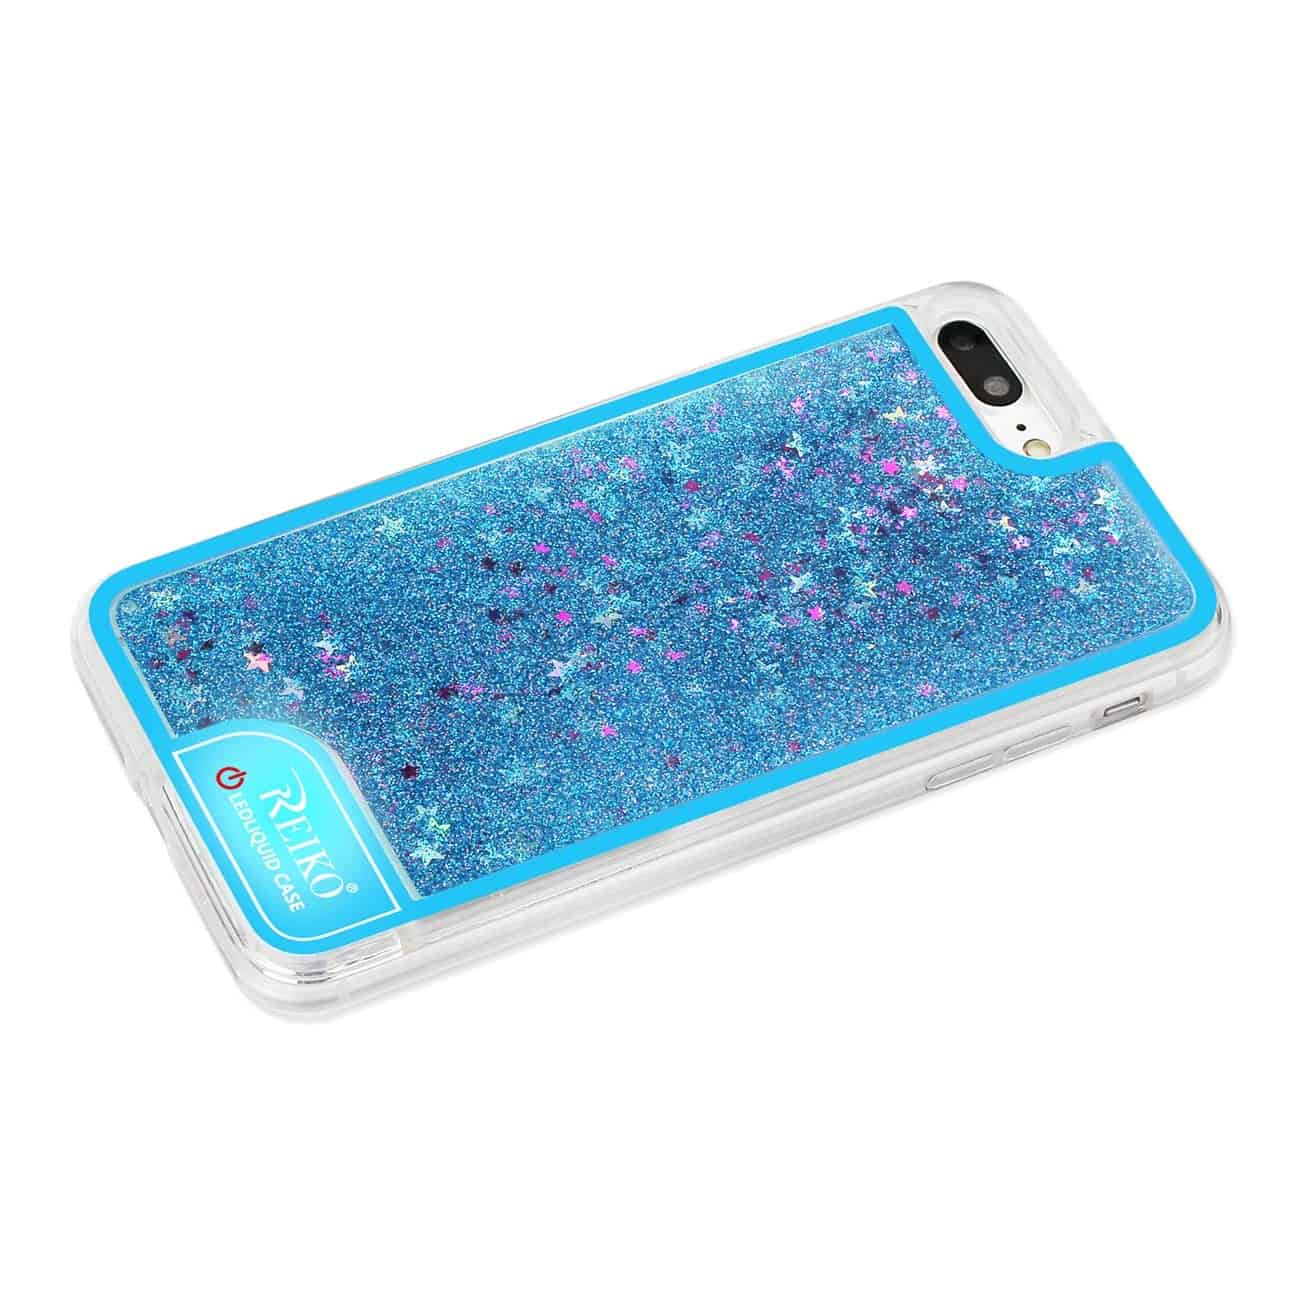 IPHONE 7 PLUS CASE WITH FLOWING GLITTER AND LED EFFECT IN BLUE